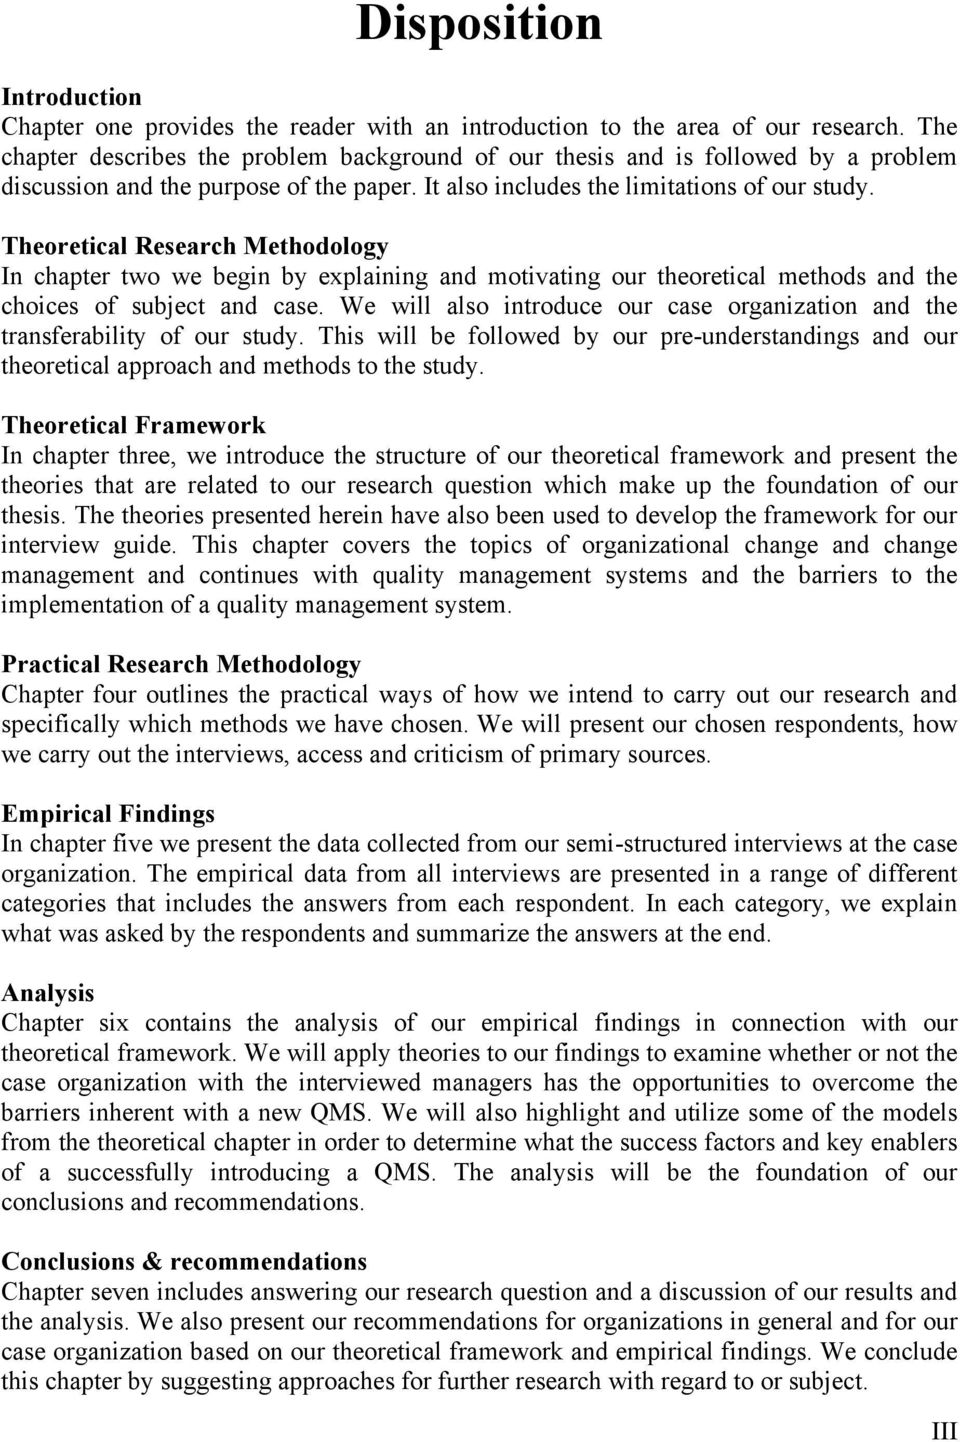 Best way to write an introduction for an essaybest research paper tufts university career services cover letter madrichimfo Choice Image